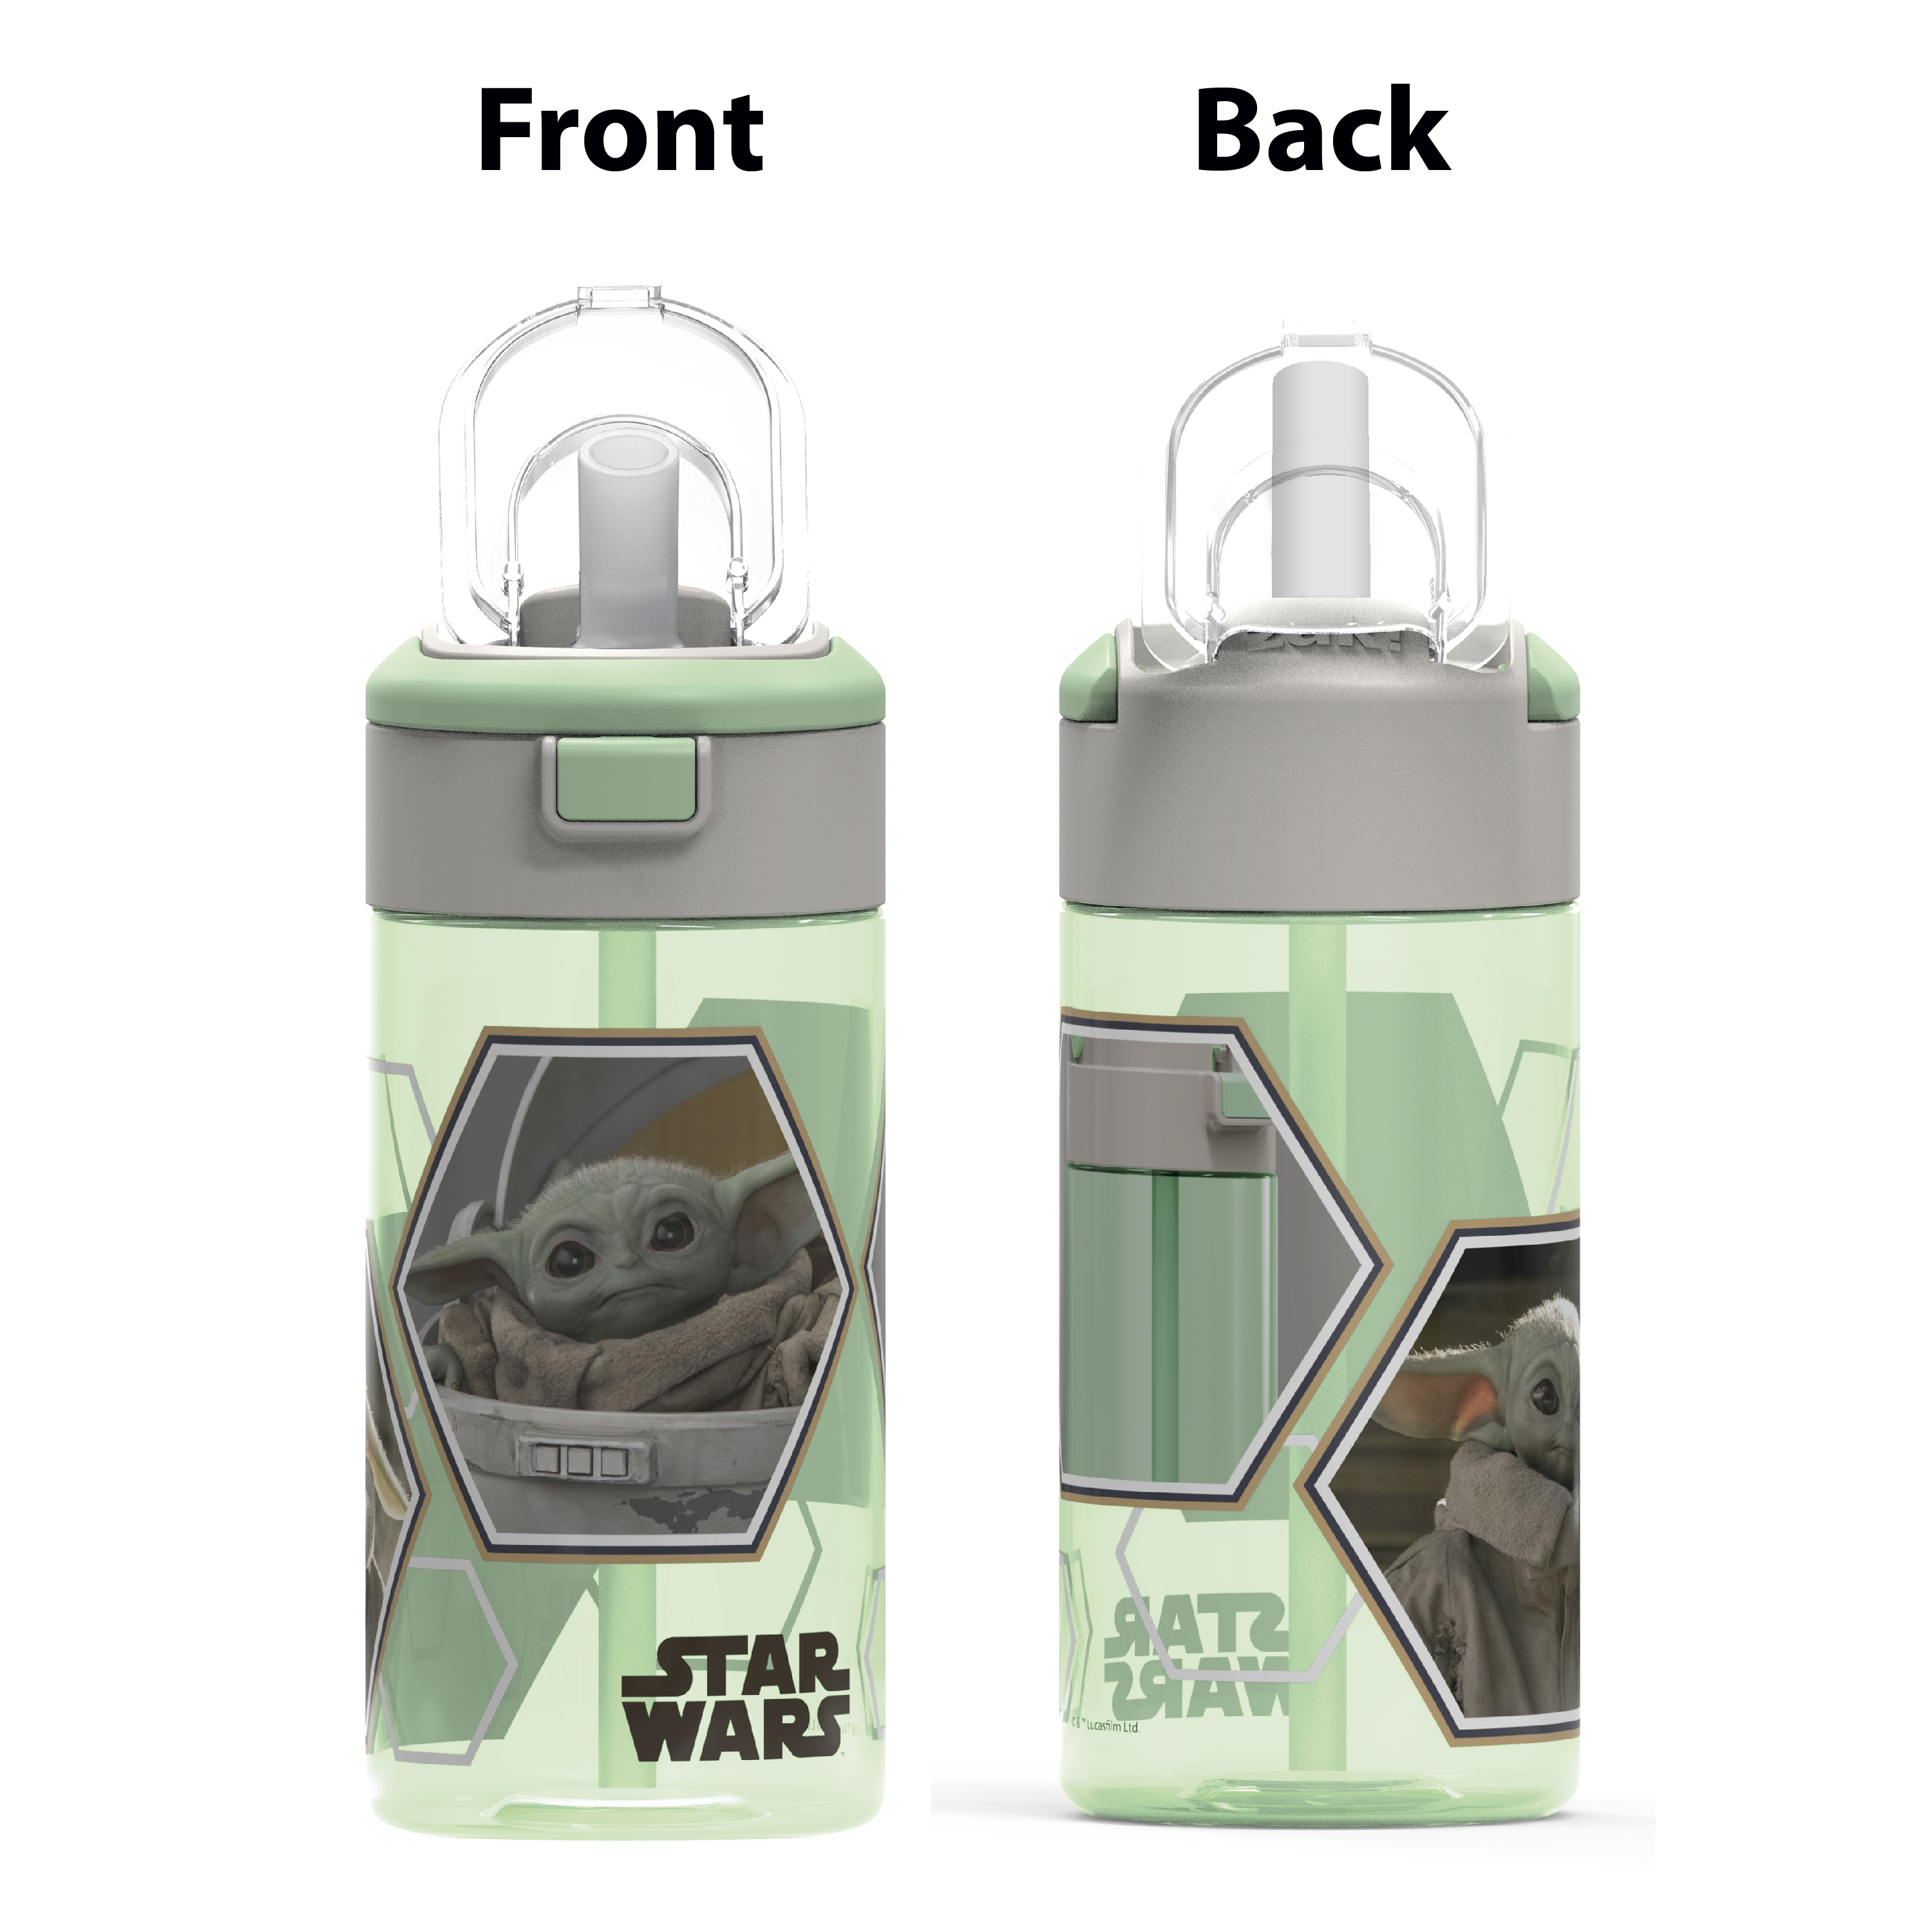 Star Wars: The Mandalorian 18 ounce Reusable Water Bottle with Straw, The Mandalorian slideshow image 7